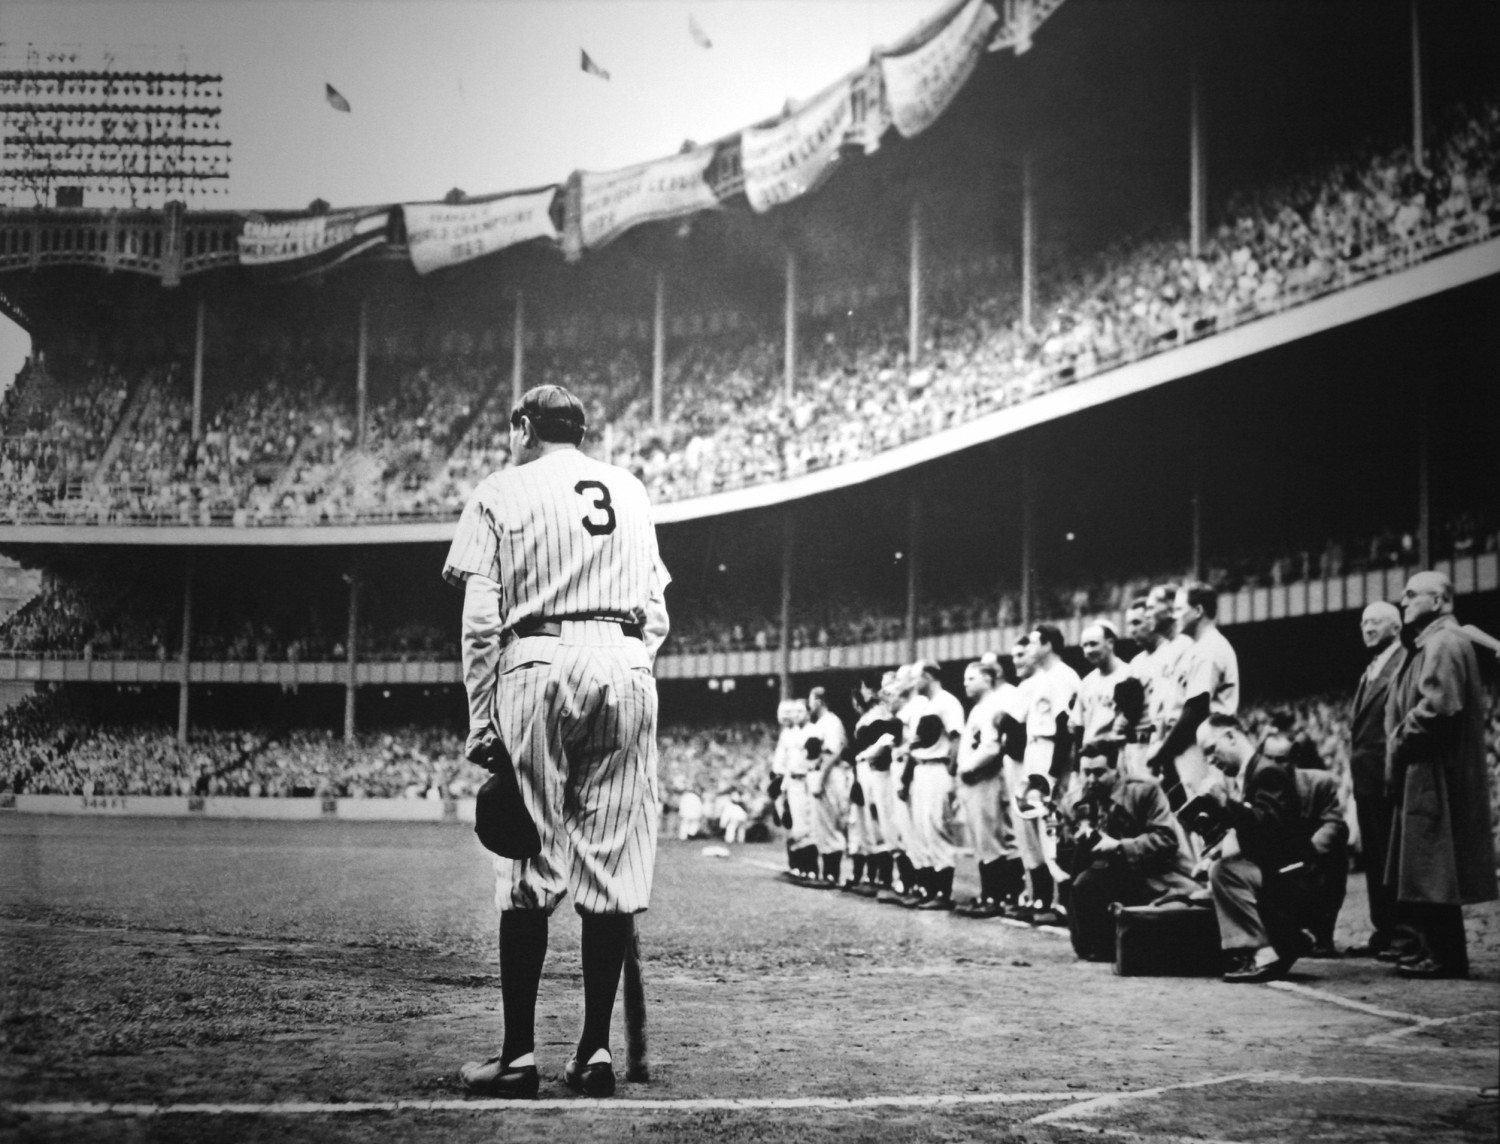 Babe Ruth's last game, 1948